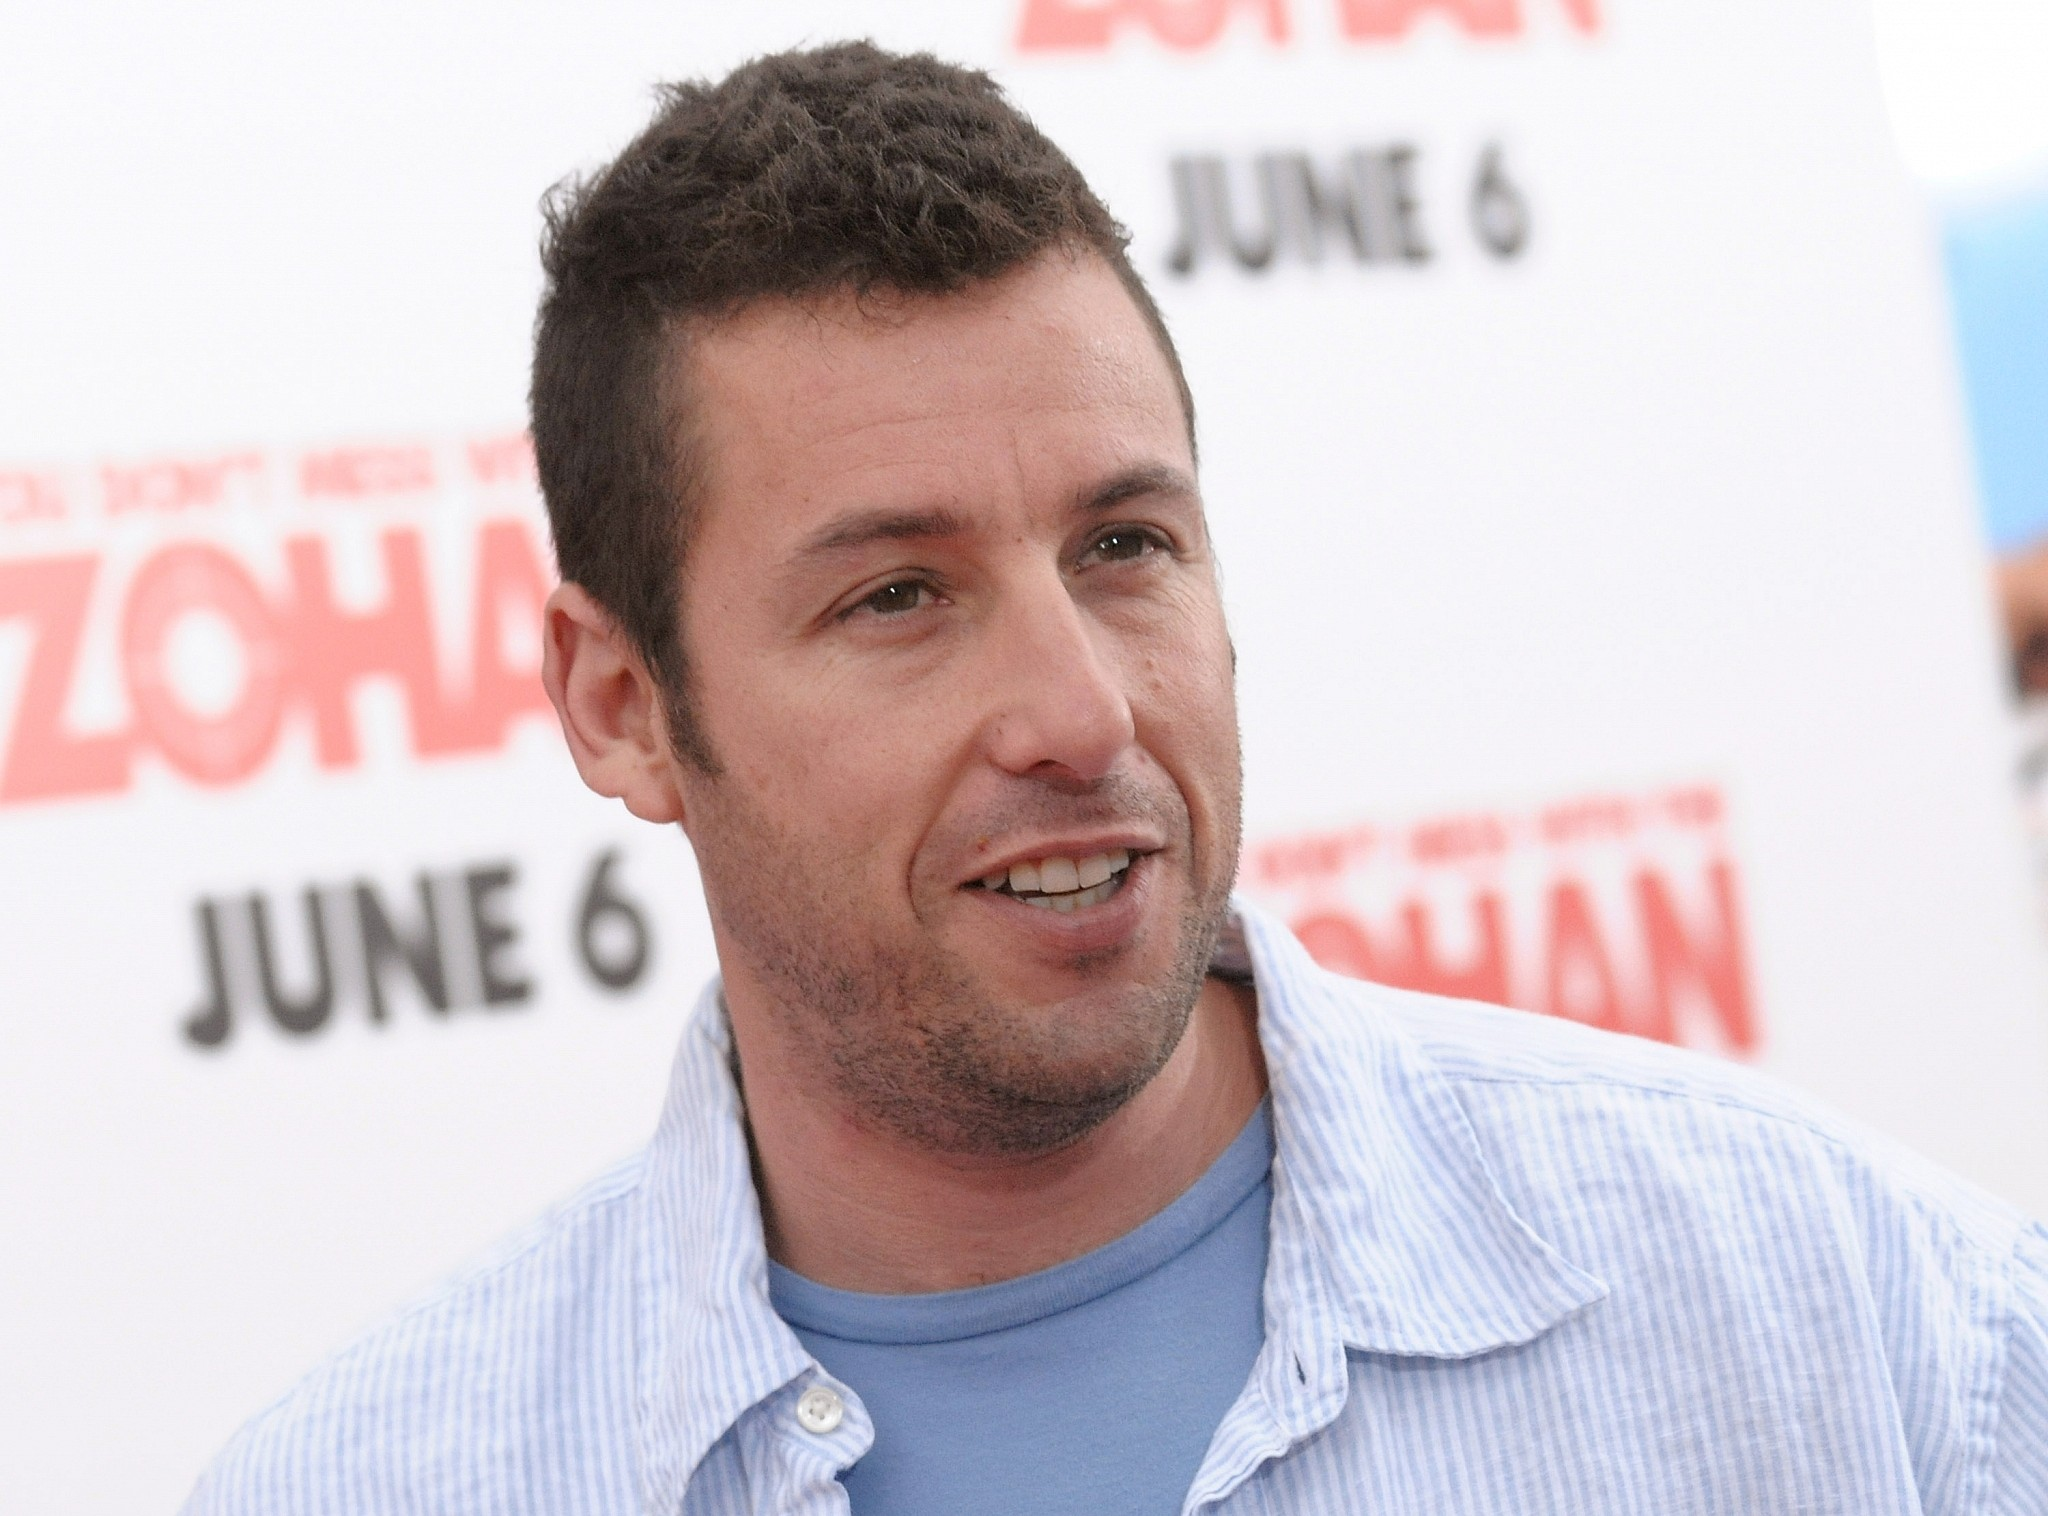 You Don't Mess With the Zohan' was Adam Sandler's liberal